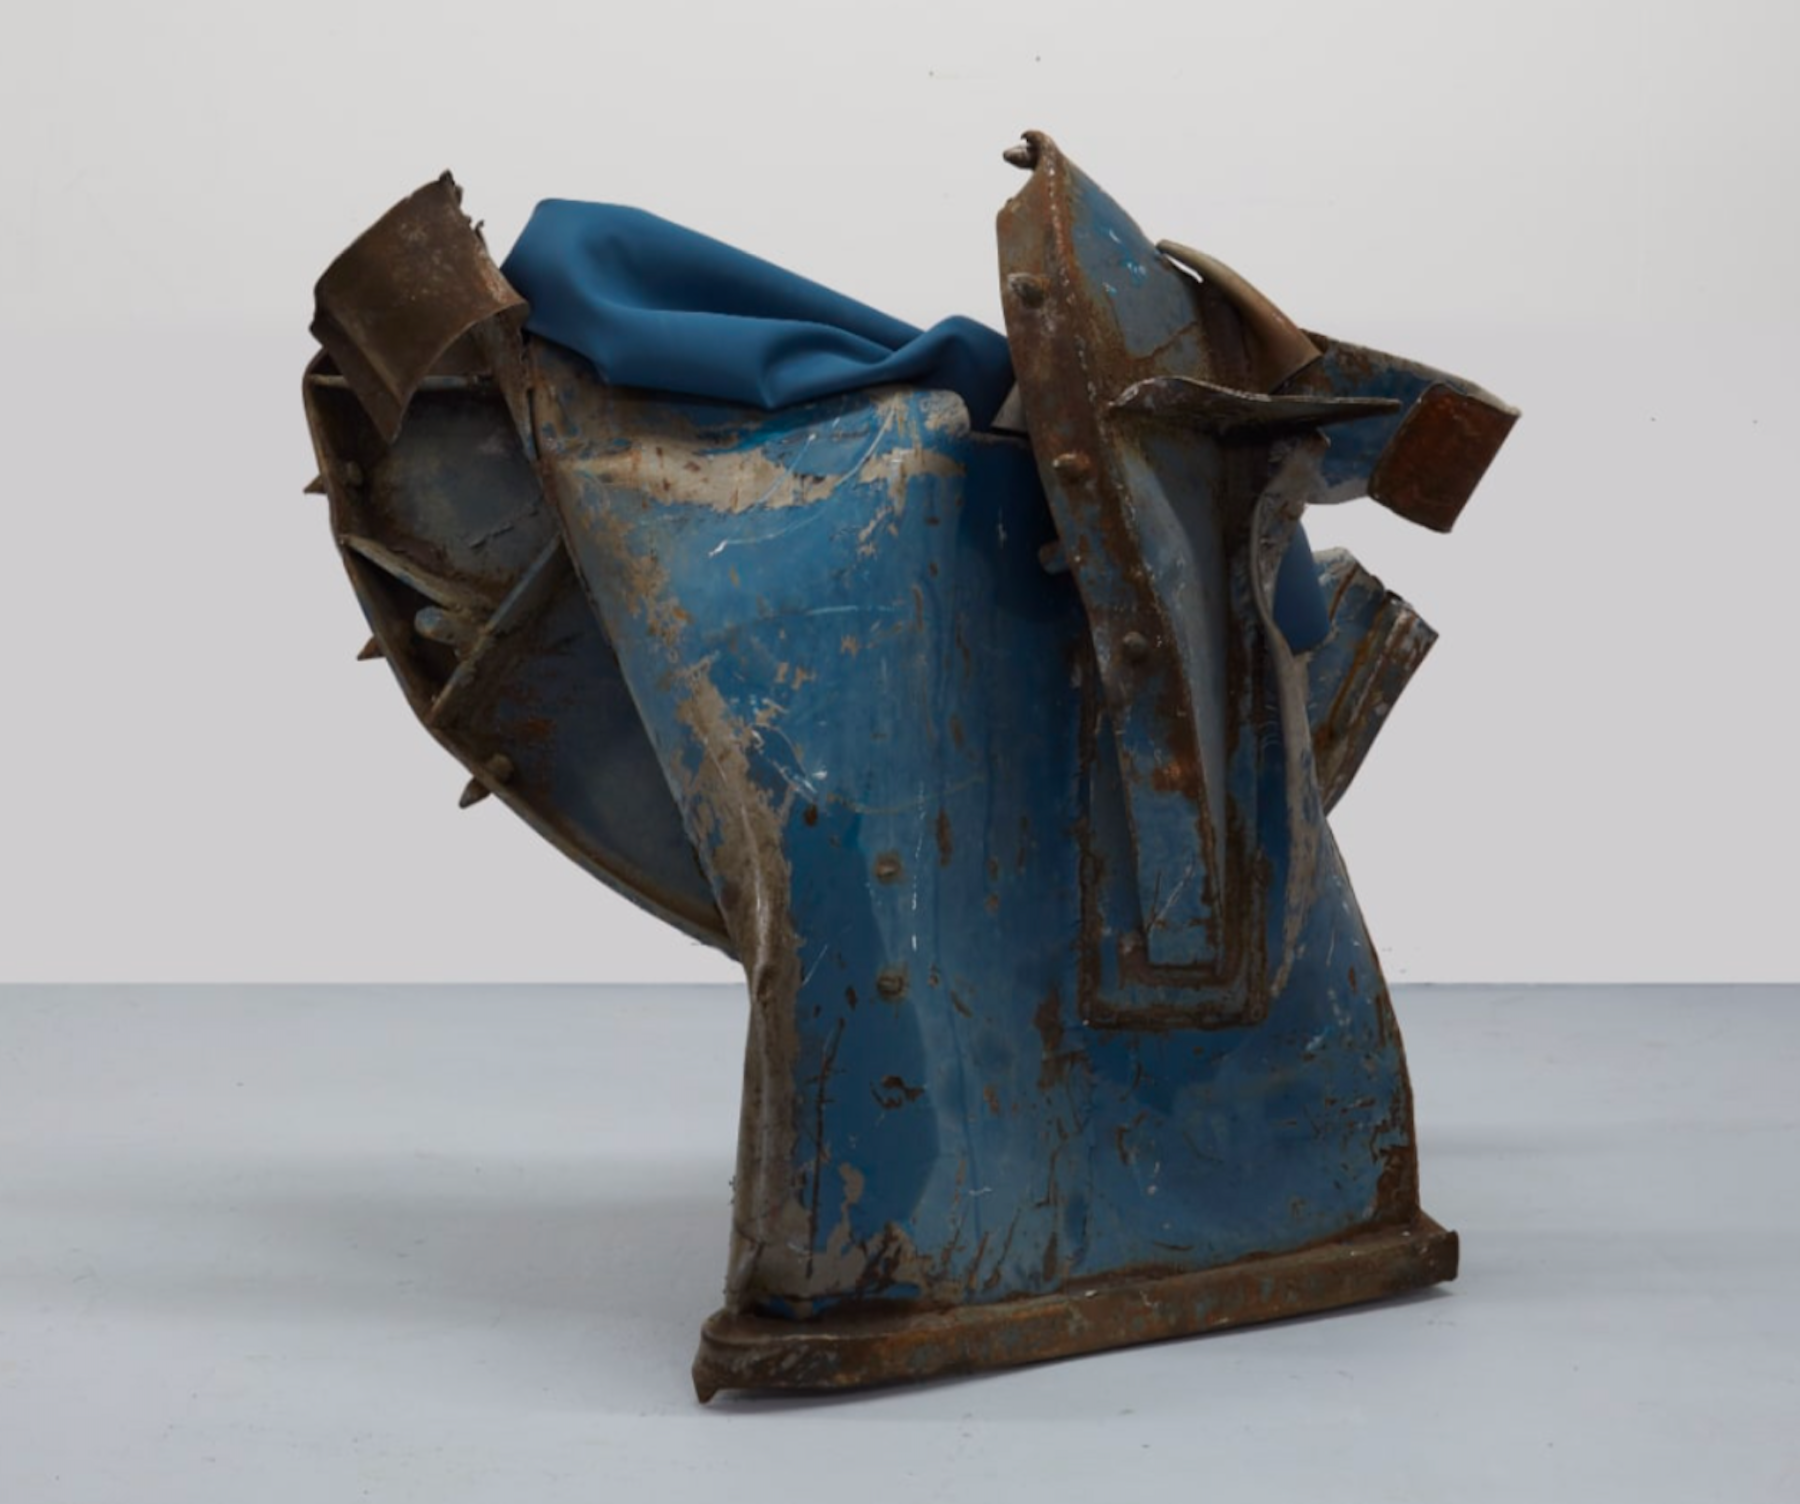 """Kennedy Yanko """"SKY,"""" 2020 Paint skin and metal 48 x 53 x 29"""" [HxWxD] (121.92 x 134.62 x 73.66 cm) Inventory #YAN1005 Courtesy of the artist and Vielmetter Los Angeles Photo credit: Martin Parsekian"""